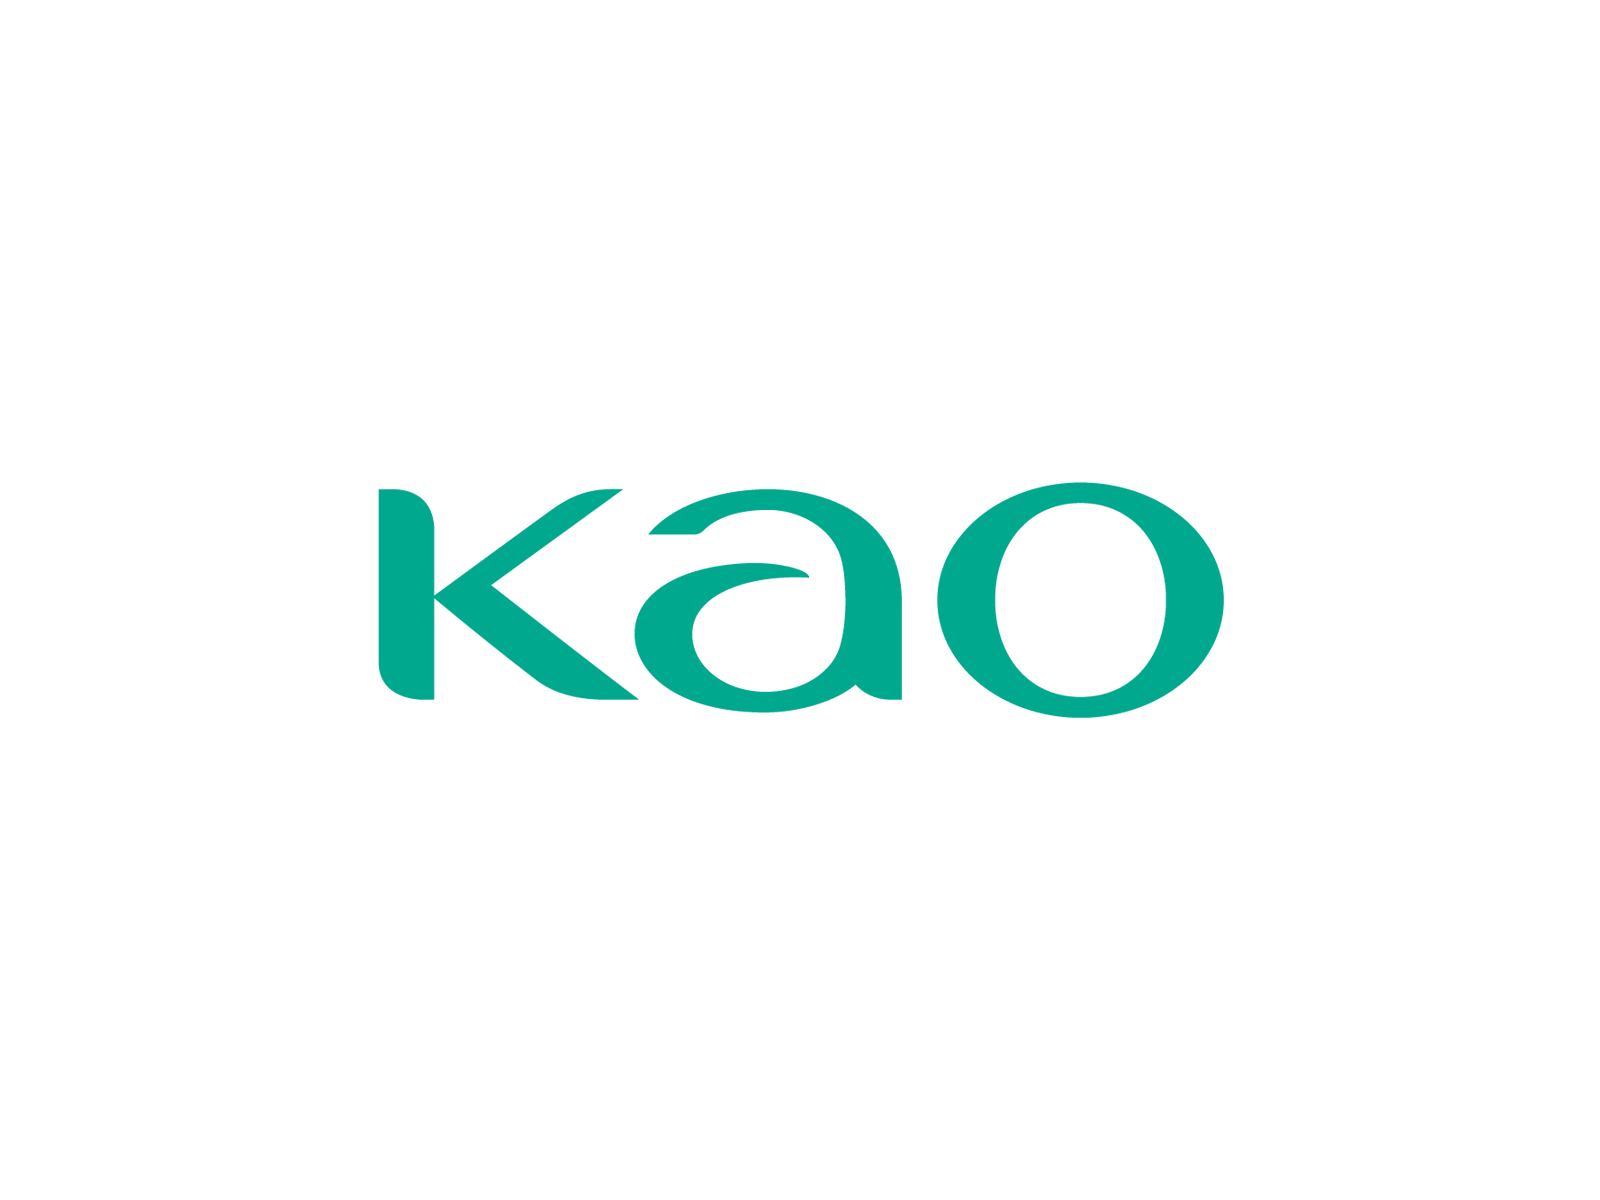 kao corporation is a chemical and cosmetics company marketing essay In 1982 kao entered the cosmetics market for the first time with its sofina line of   high point chemical corporation, a specialty chemical company based in north   in a prime example of kao's global marketing strategy, the bioré product was.